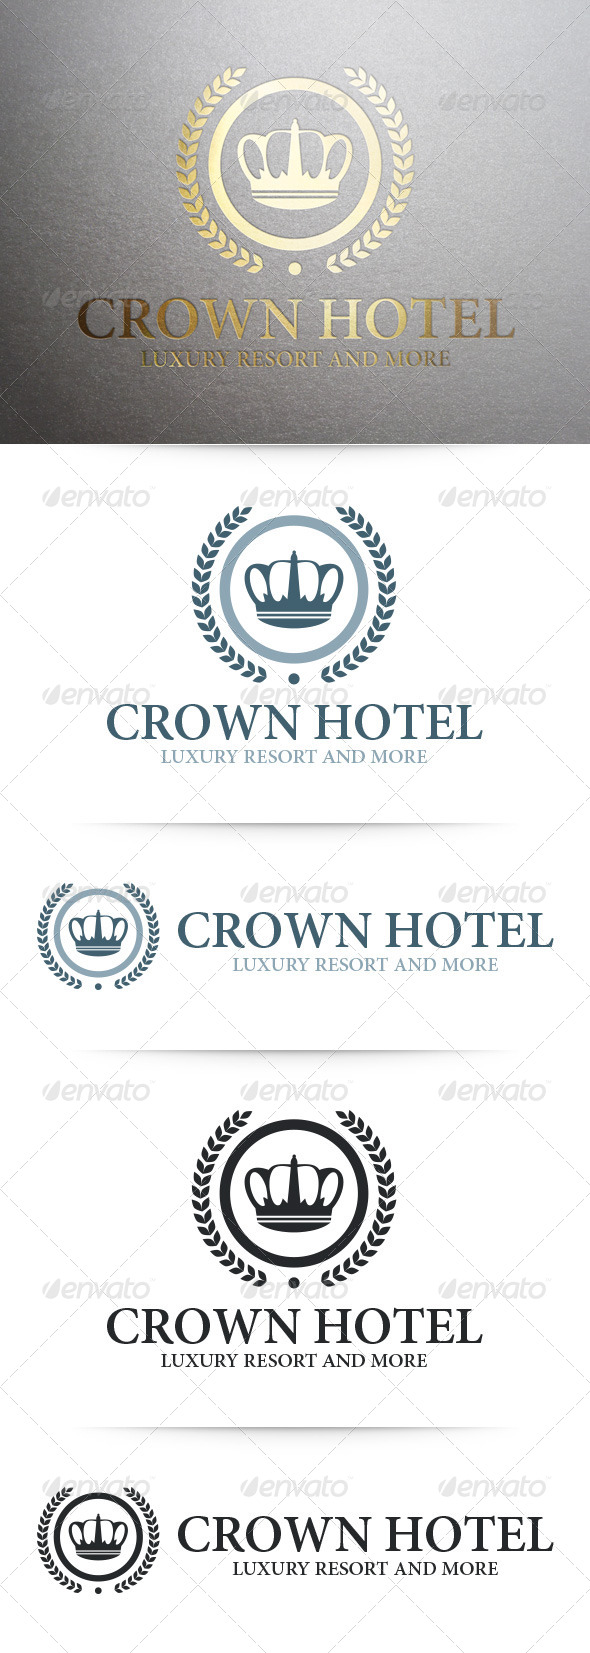 GraphicRiver Crown Hotel Logo Template 7771512